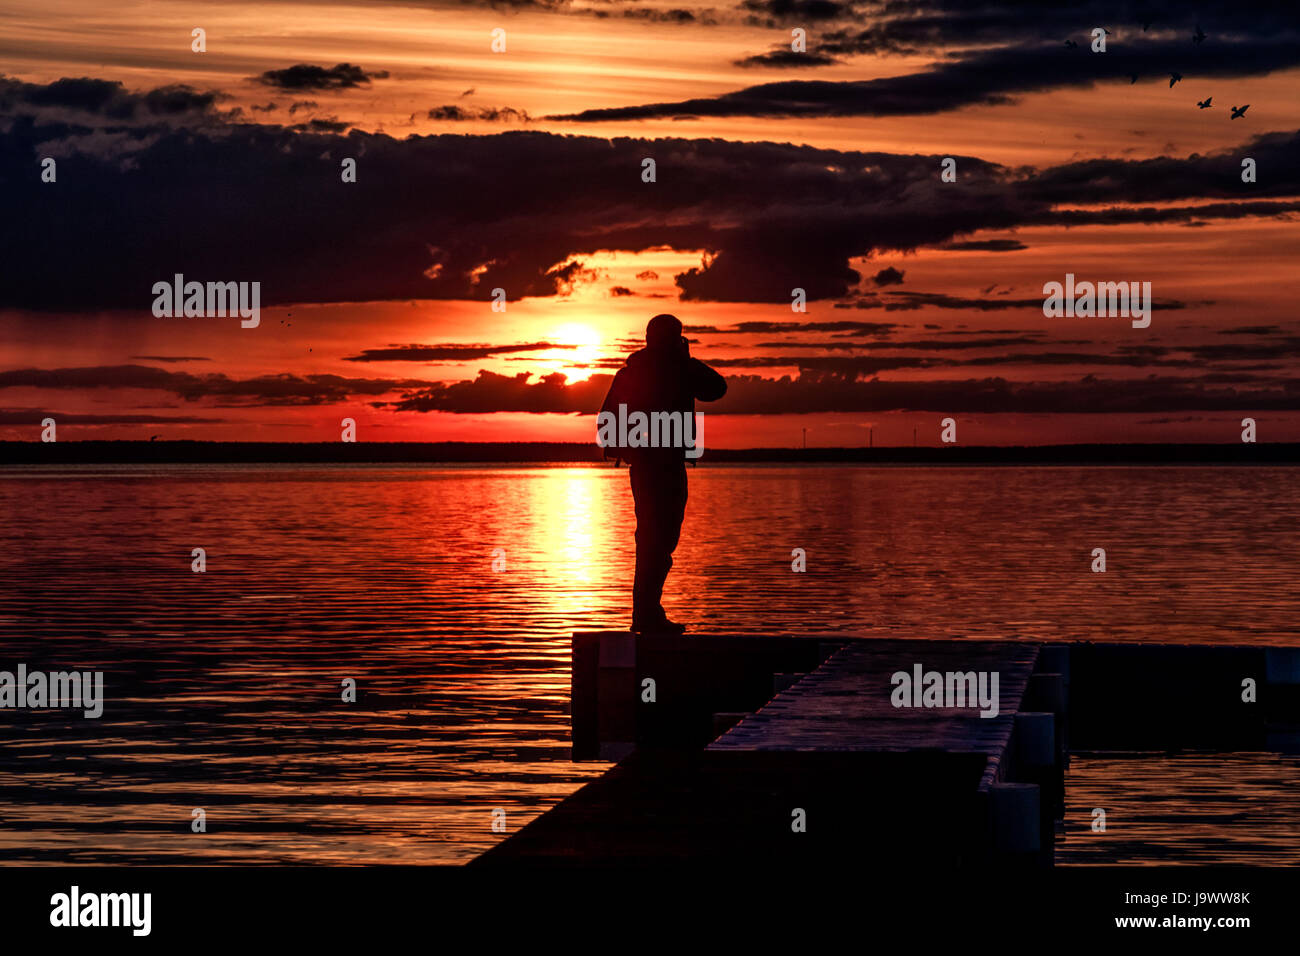 photographer and decline - Stock Image